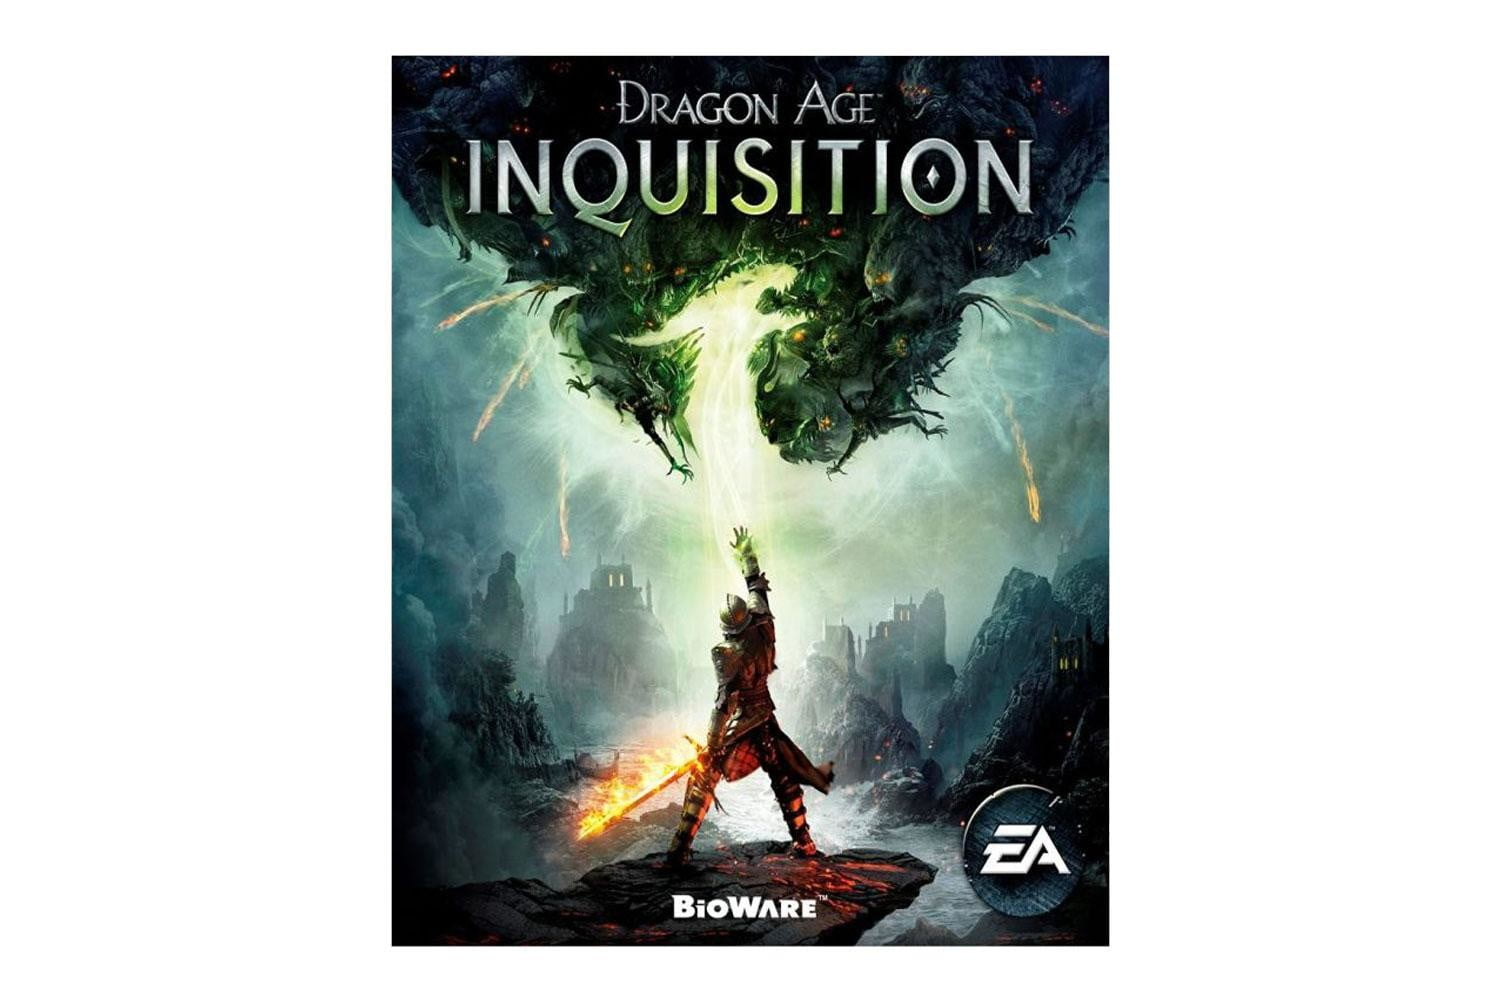 Dragon-Age-Inquisition-cover-art